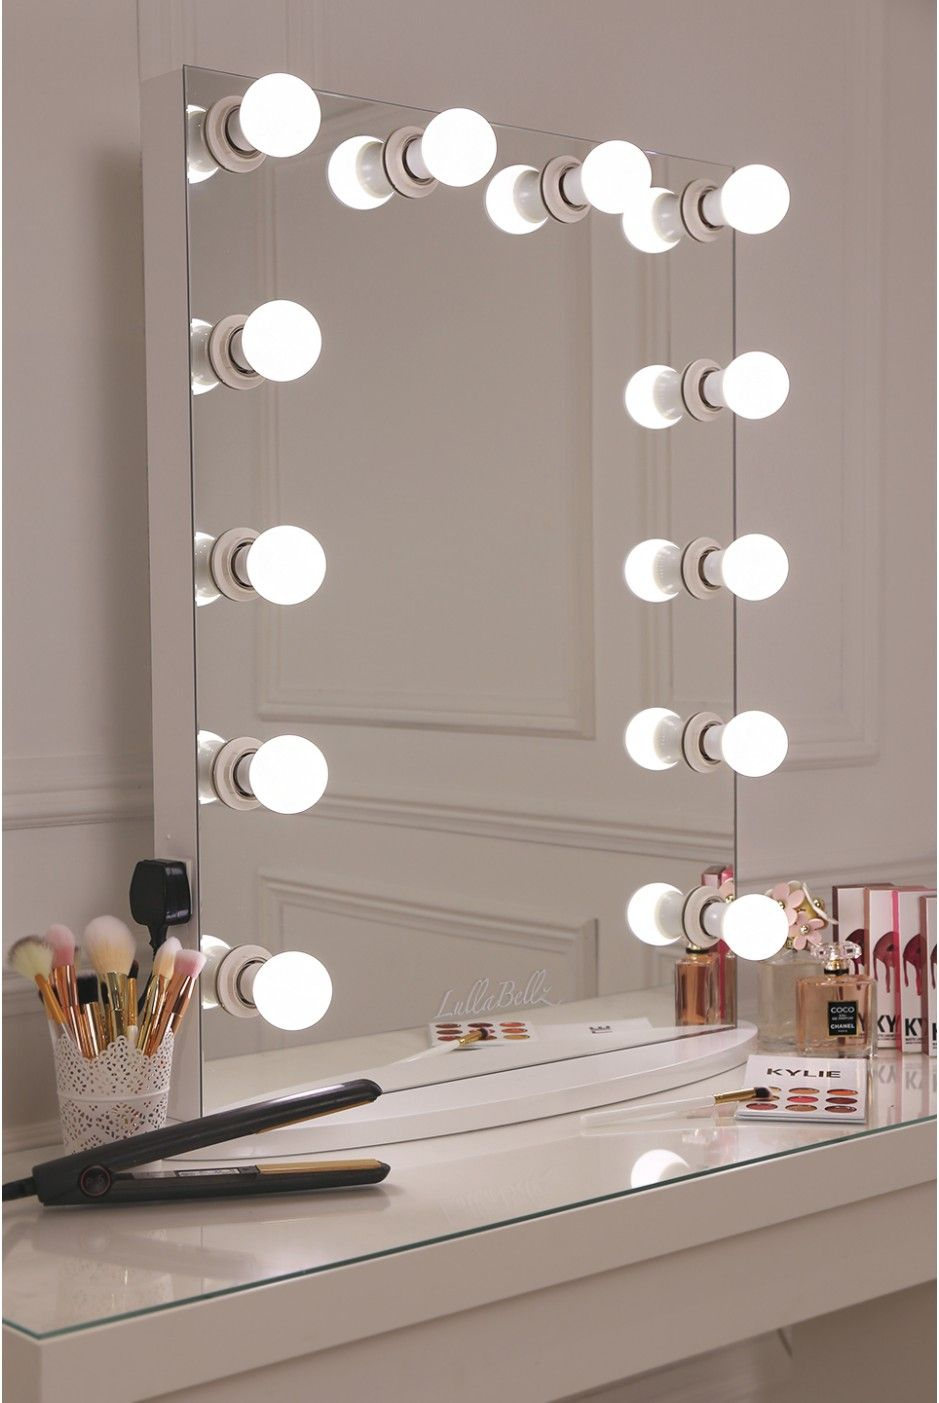 Hollywood Glow Vanity Mirror With LED Bulbs LullaBellz For the